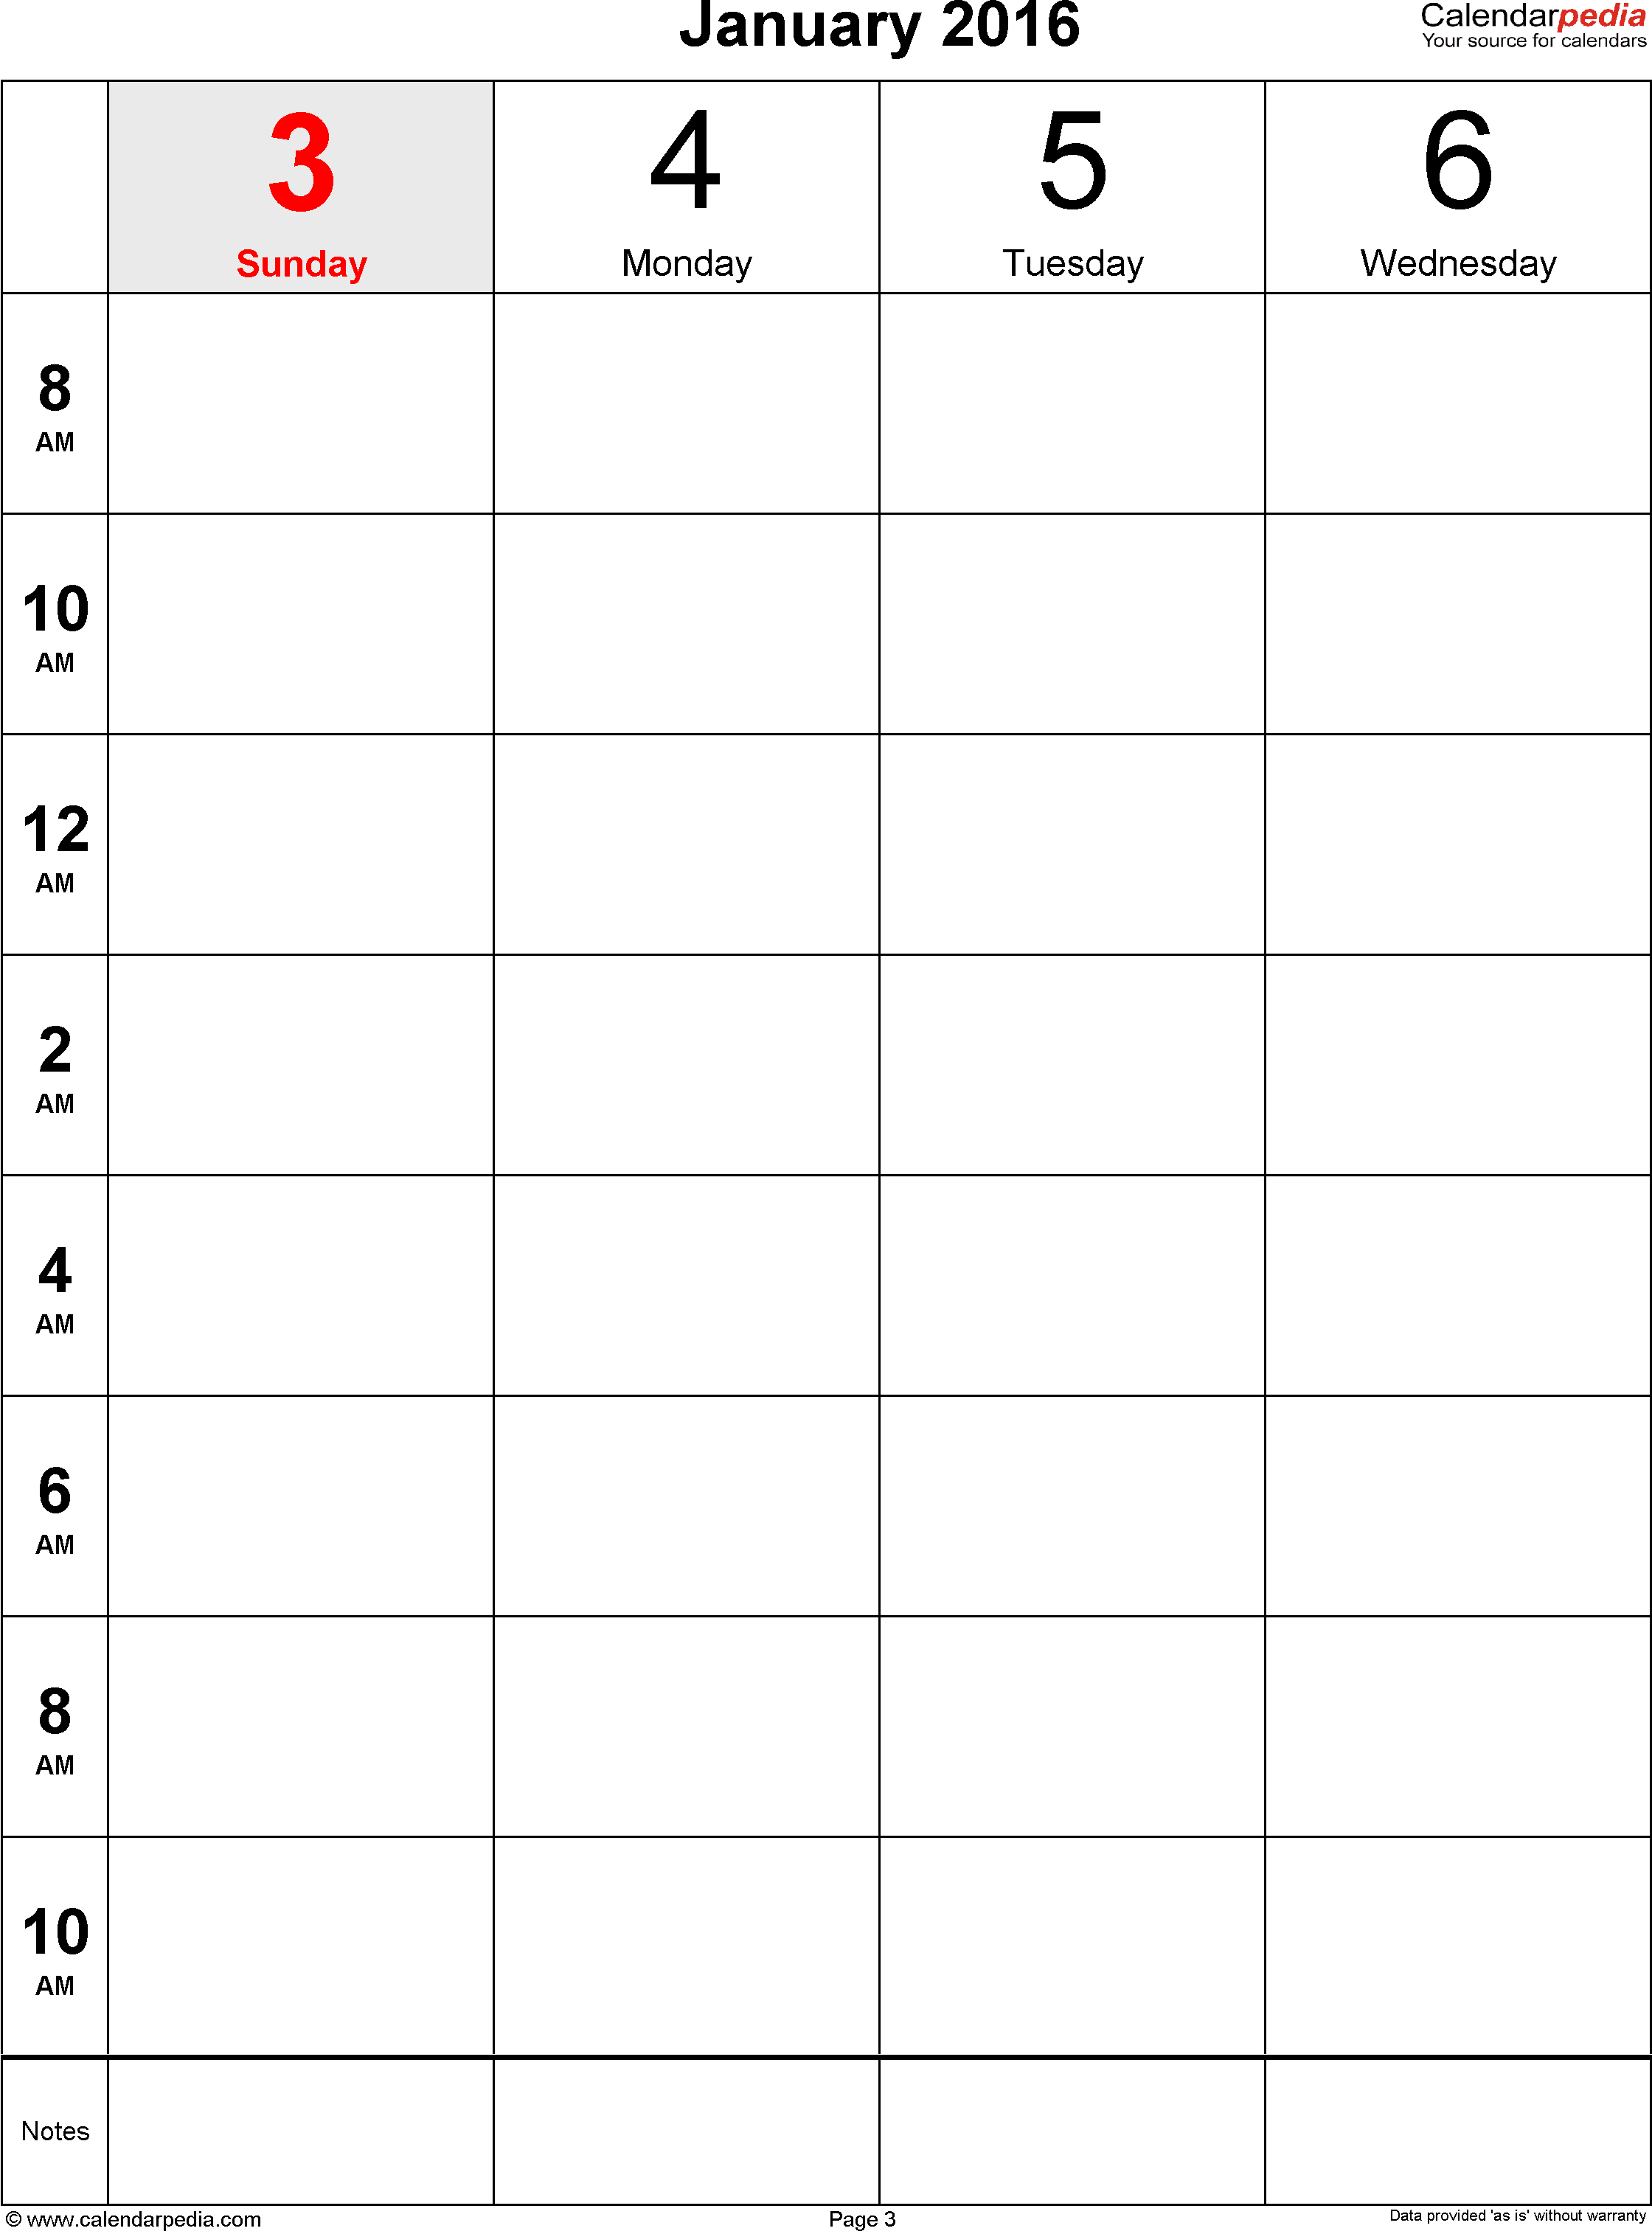 Weekly Calendar 2016 For Word - 12 Free Printable Templates intended for Free Printable Weekly Schedule Template